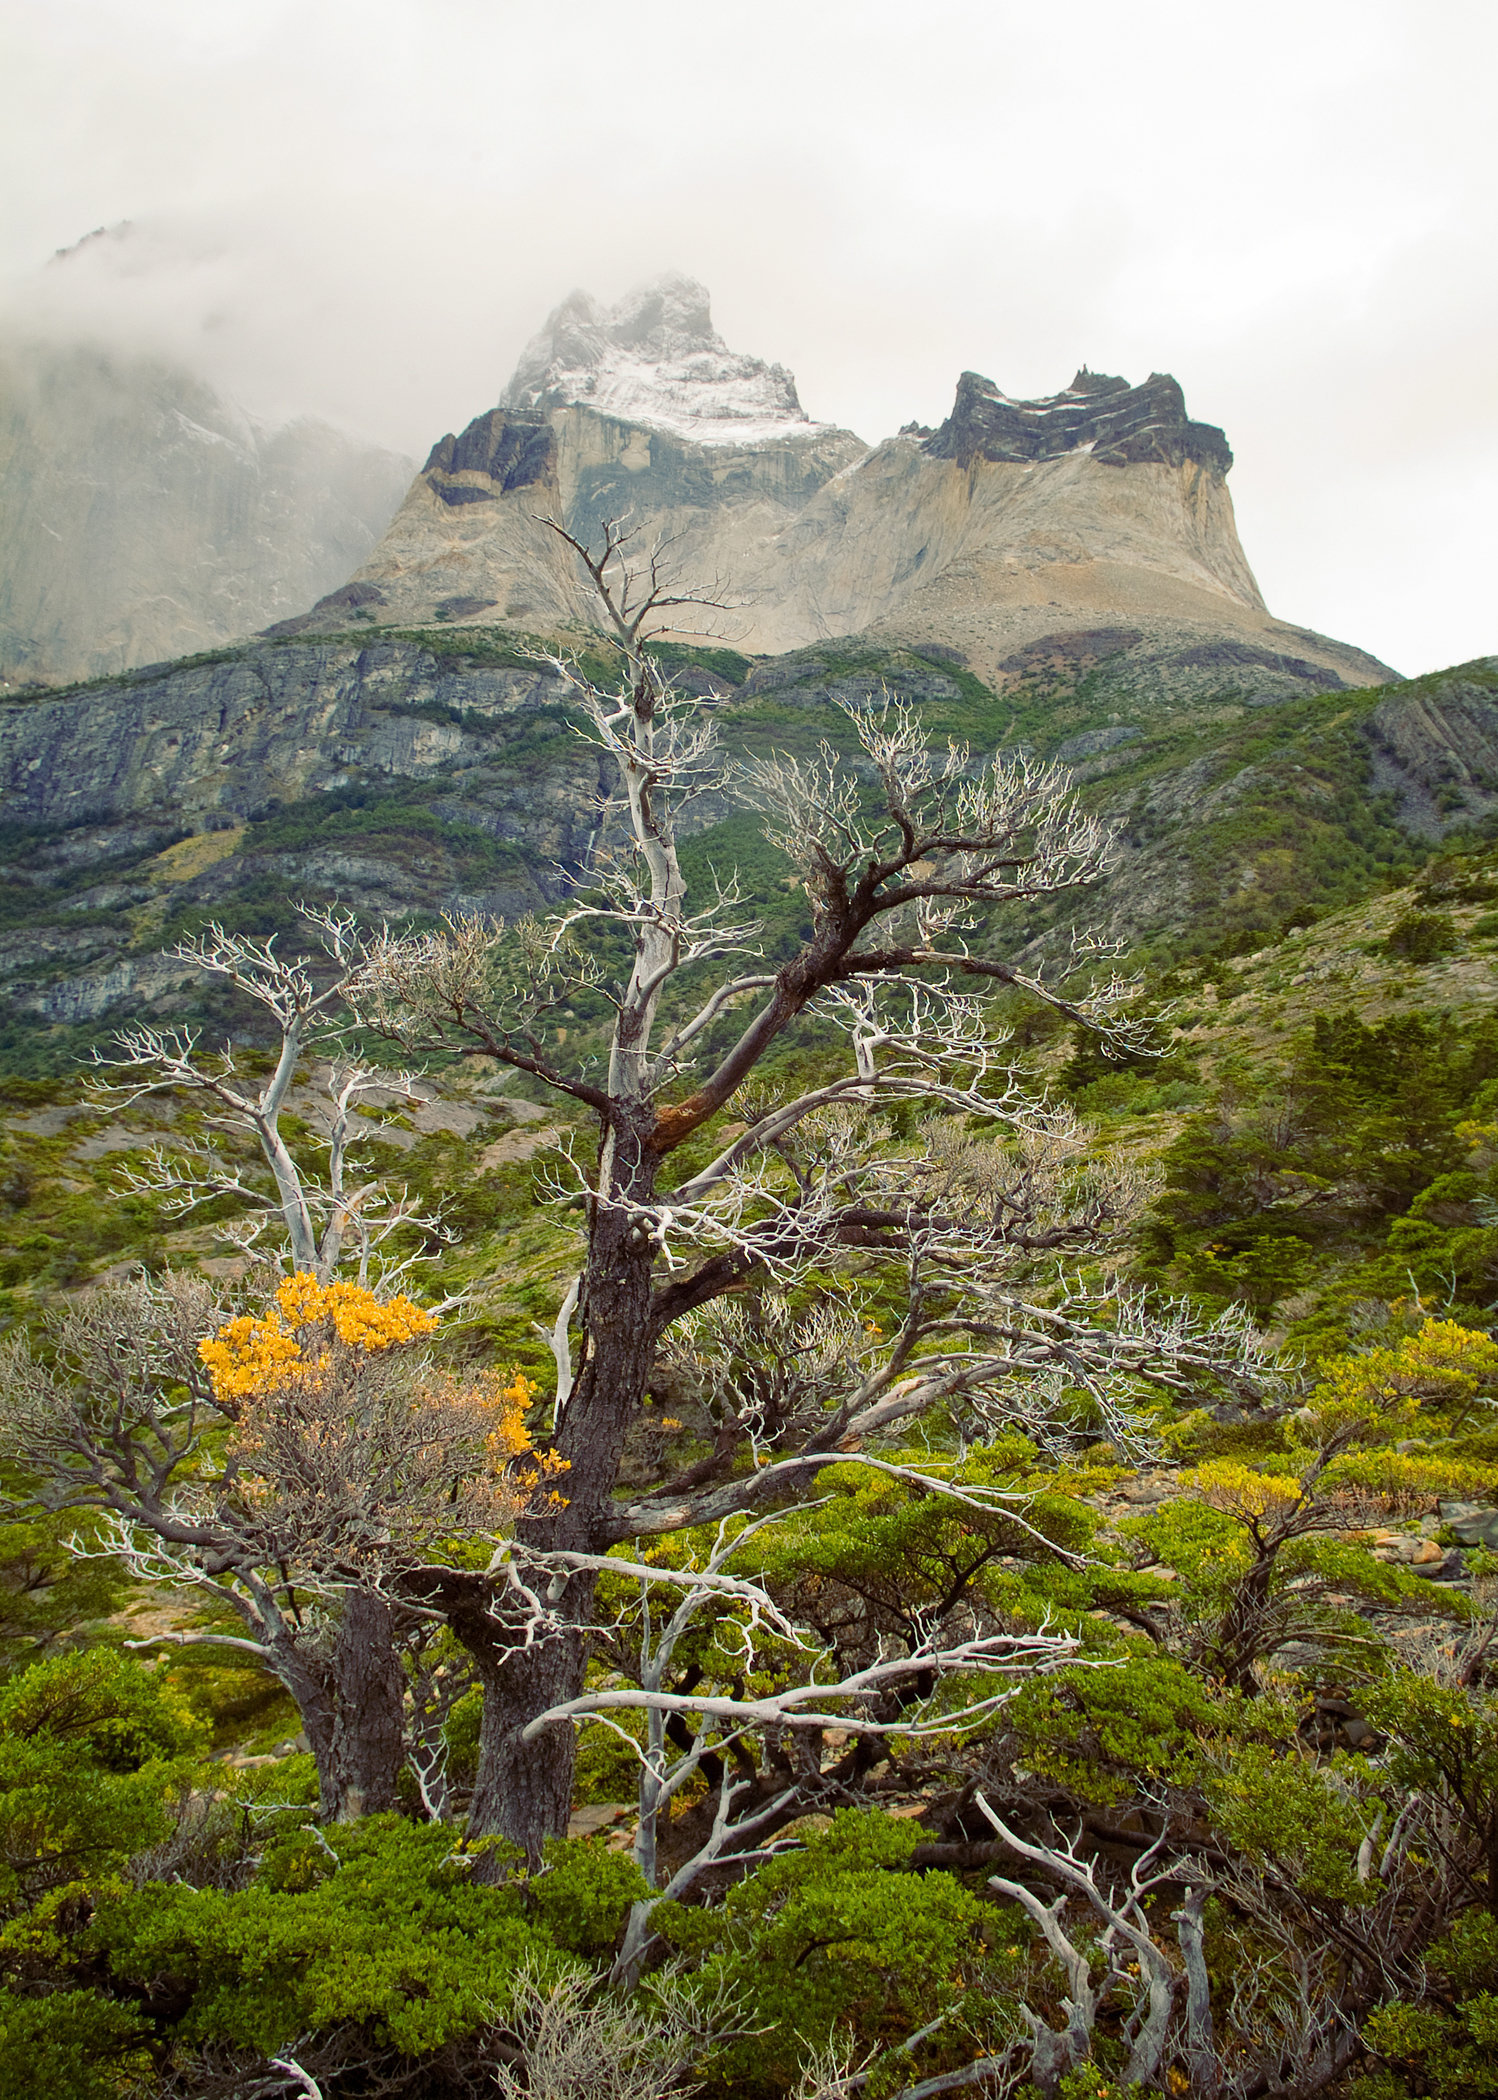 The Horns of Paine